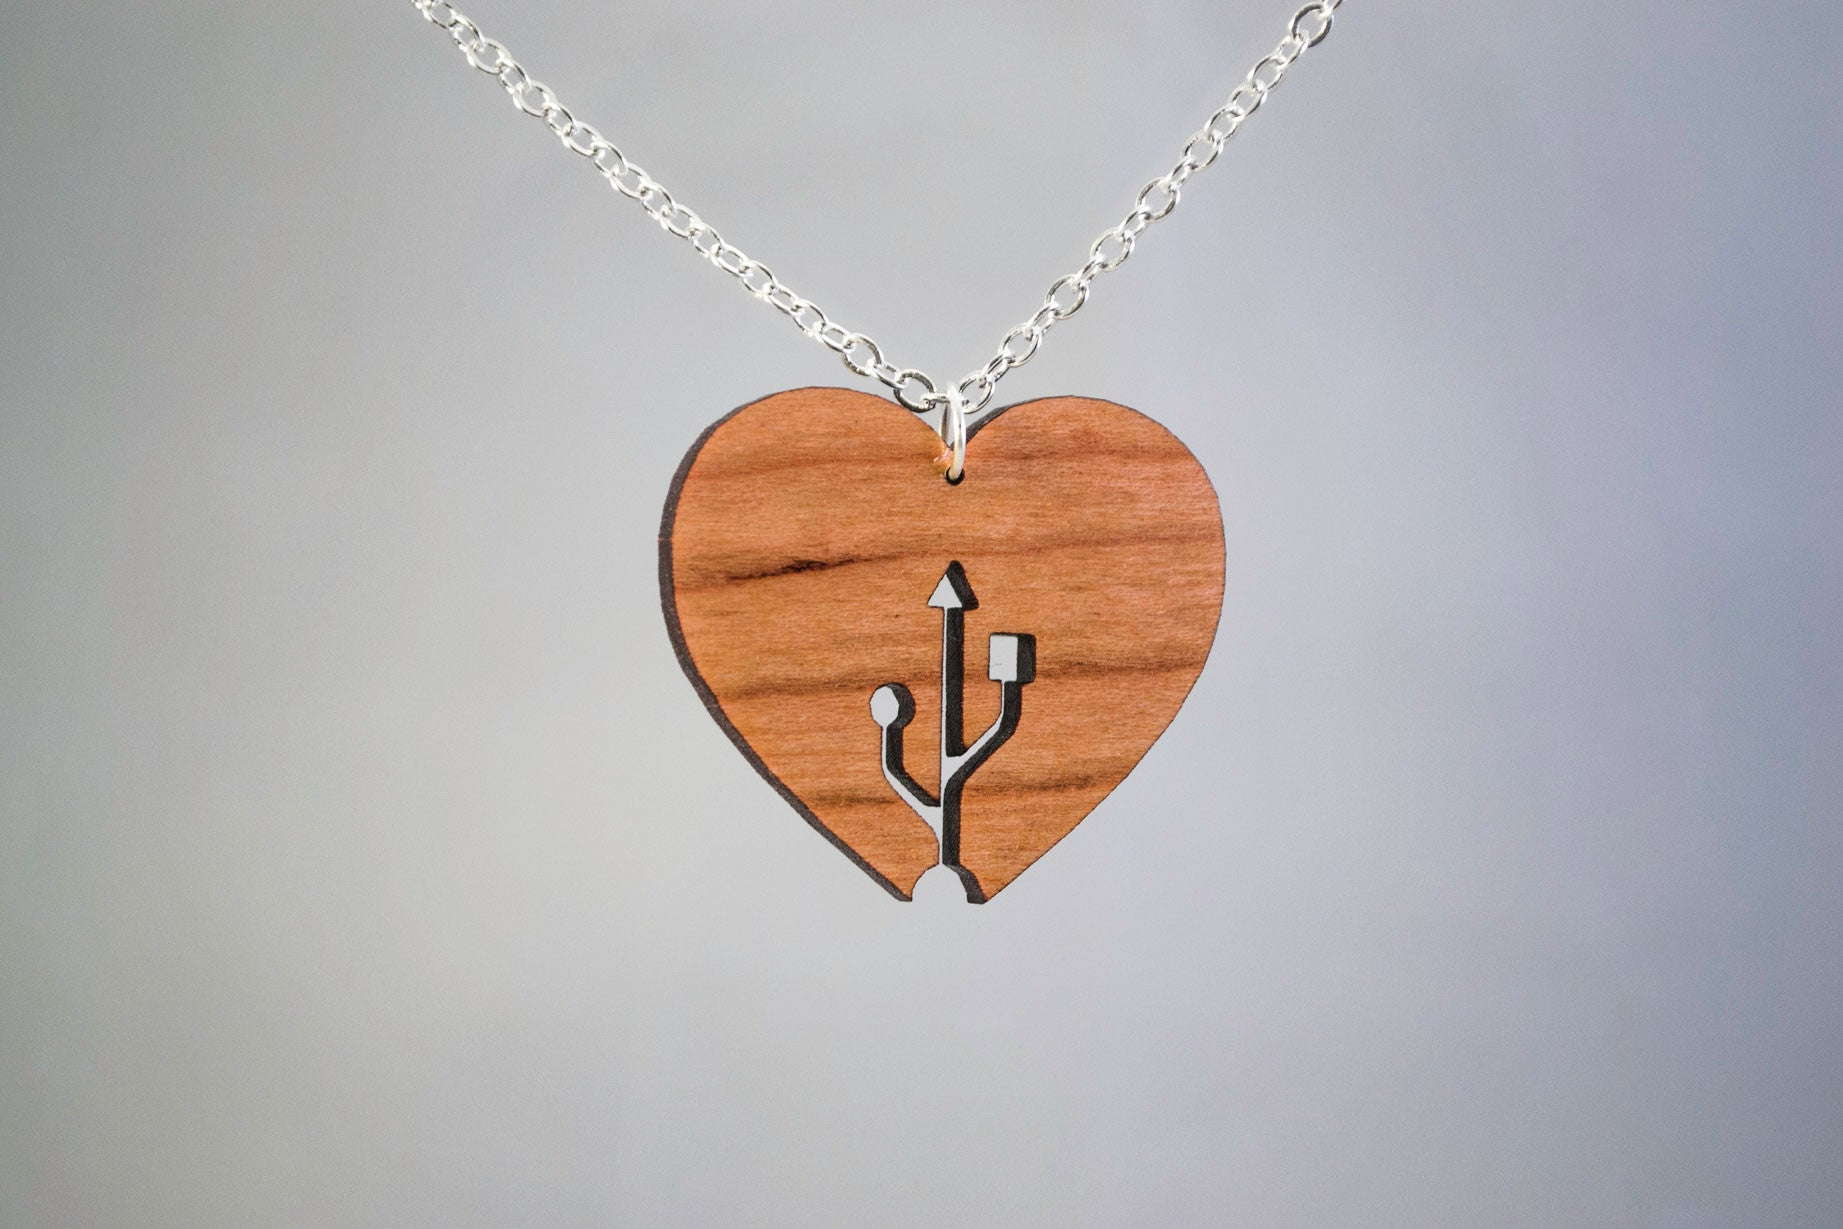 romantic shopmoonchild of necklace product image hopeless